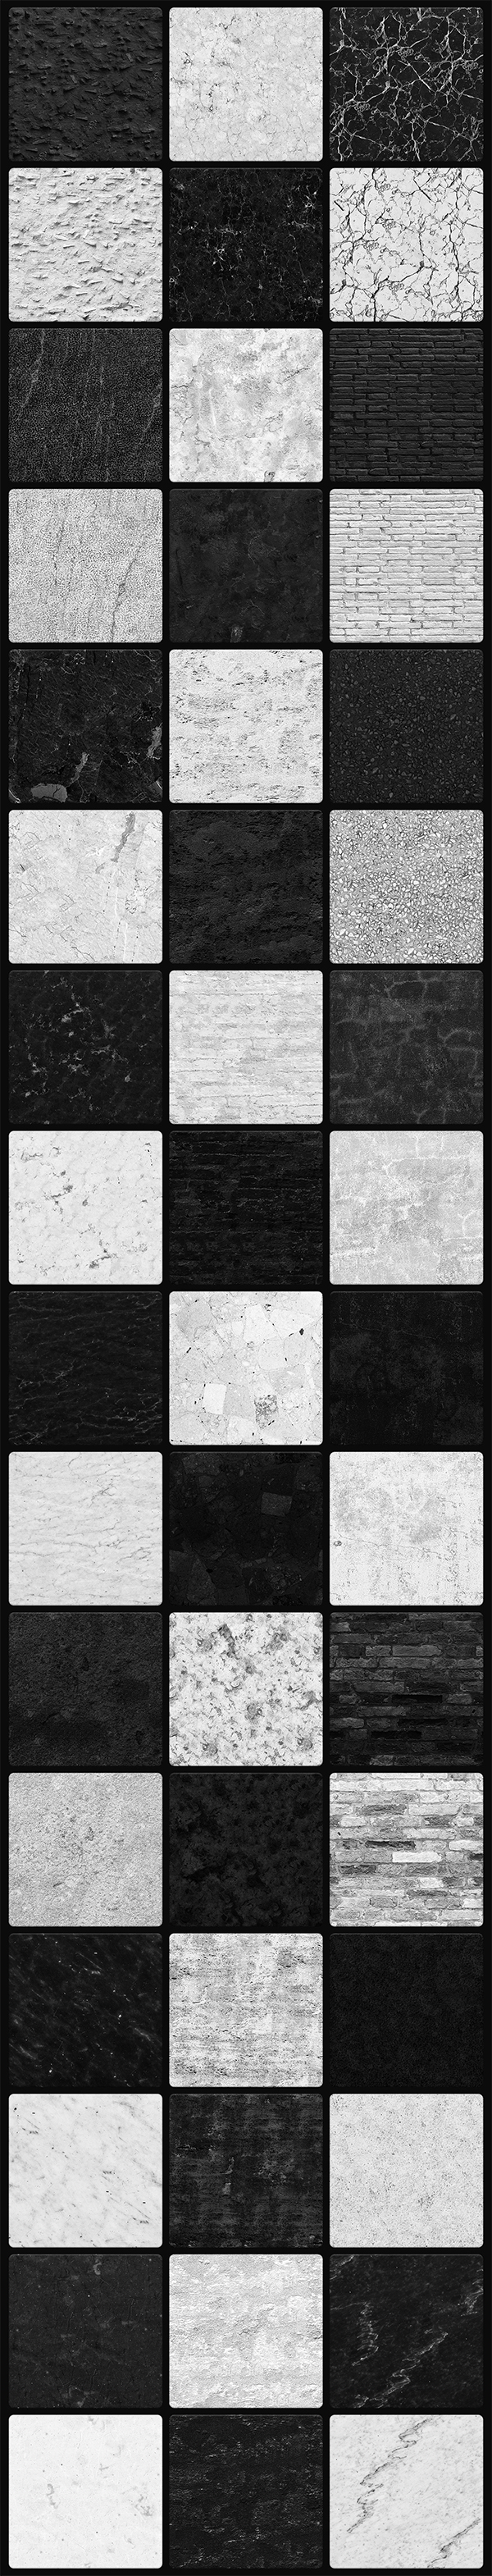 Black & White Awesome Textures